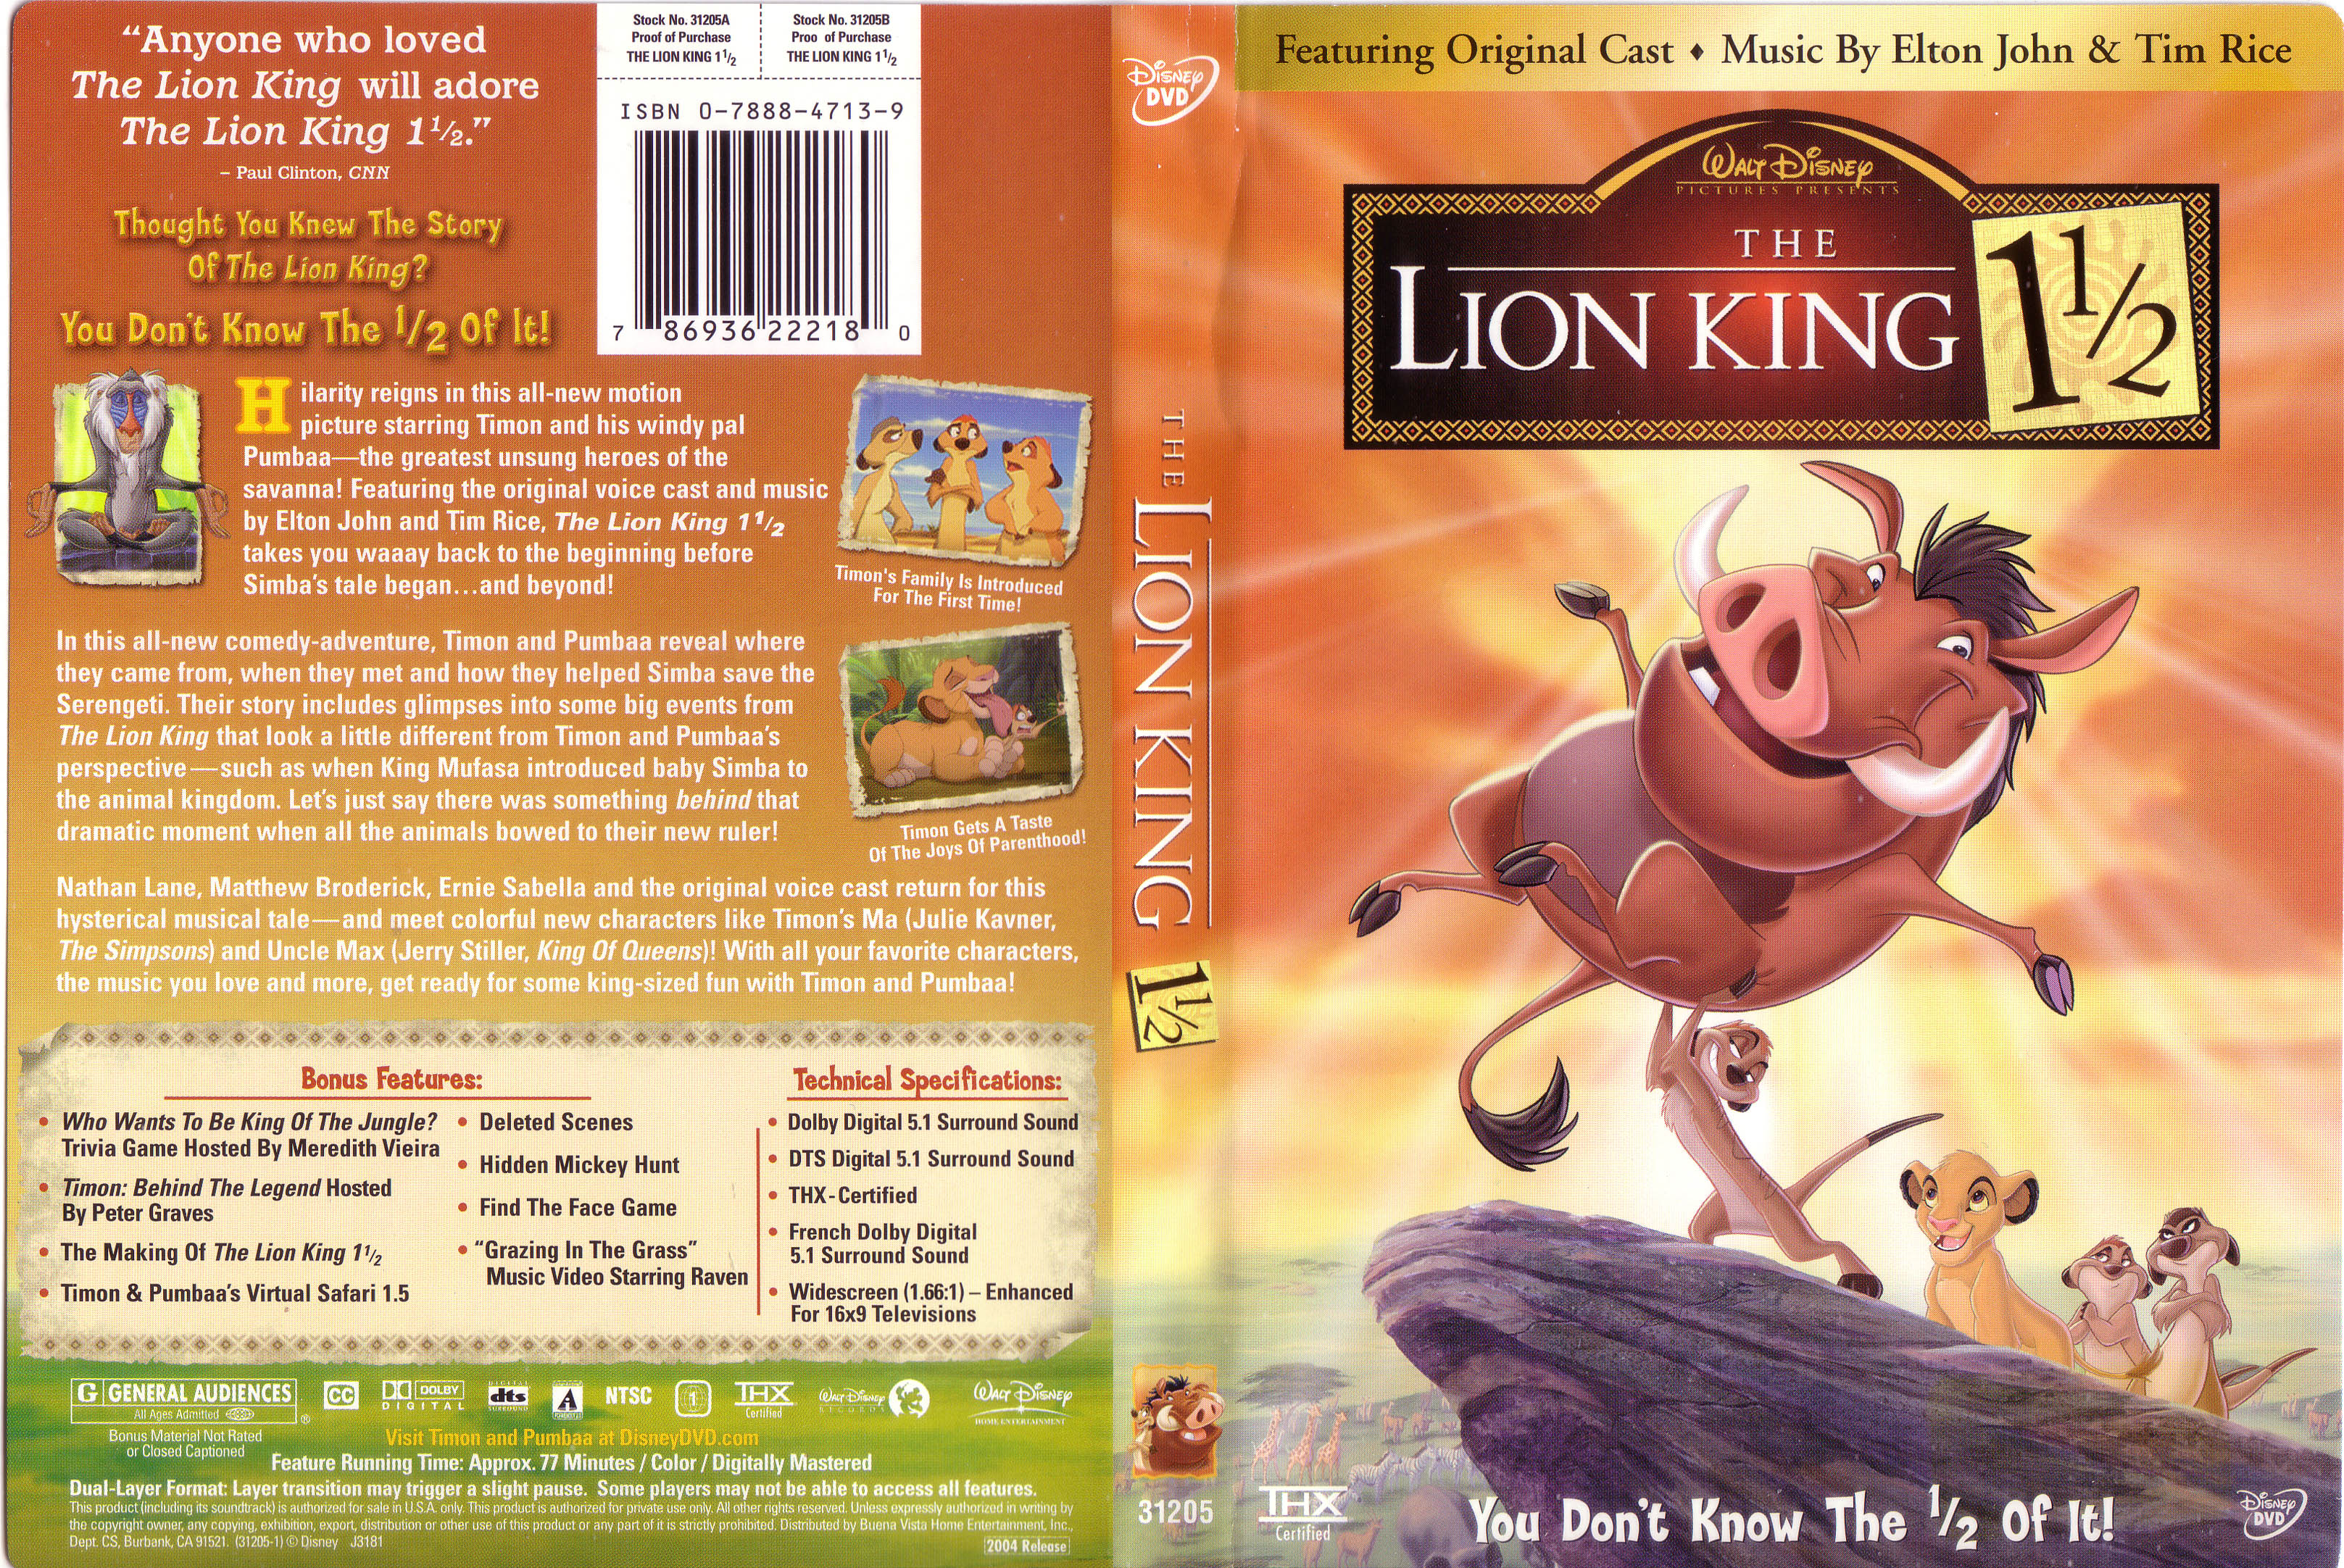 covers box sk the lion king 1 1 2 2004 high quality dvd